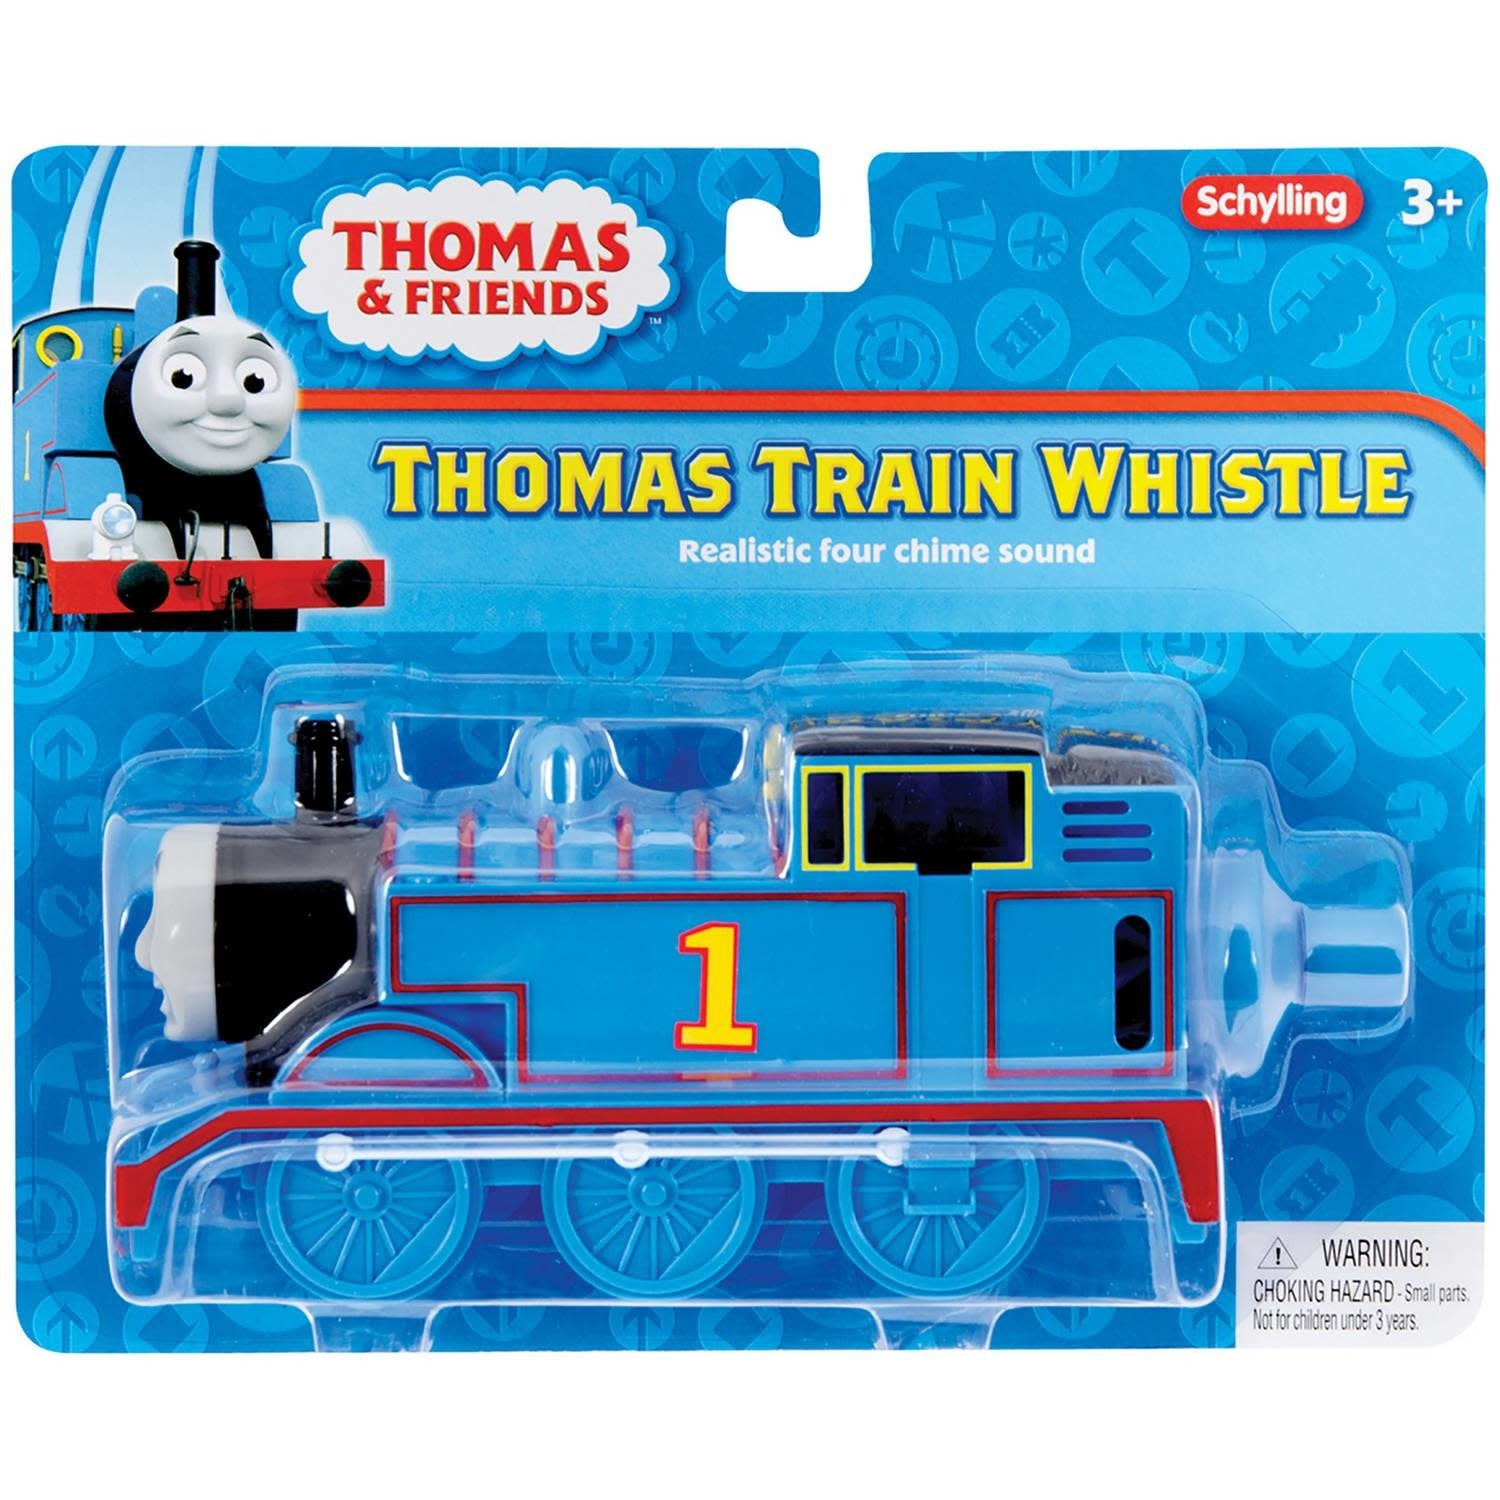 Thomas Train Whistle